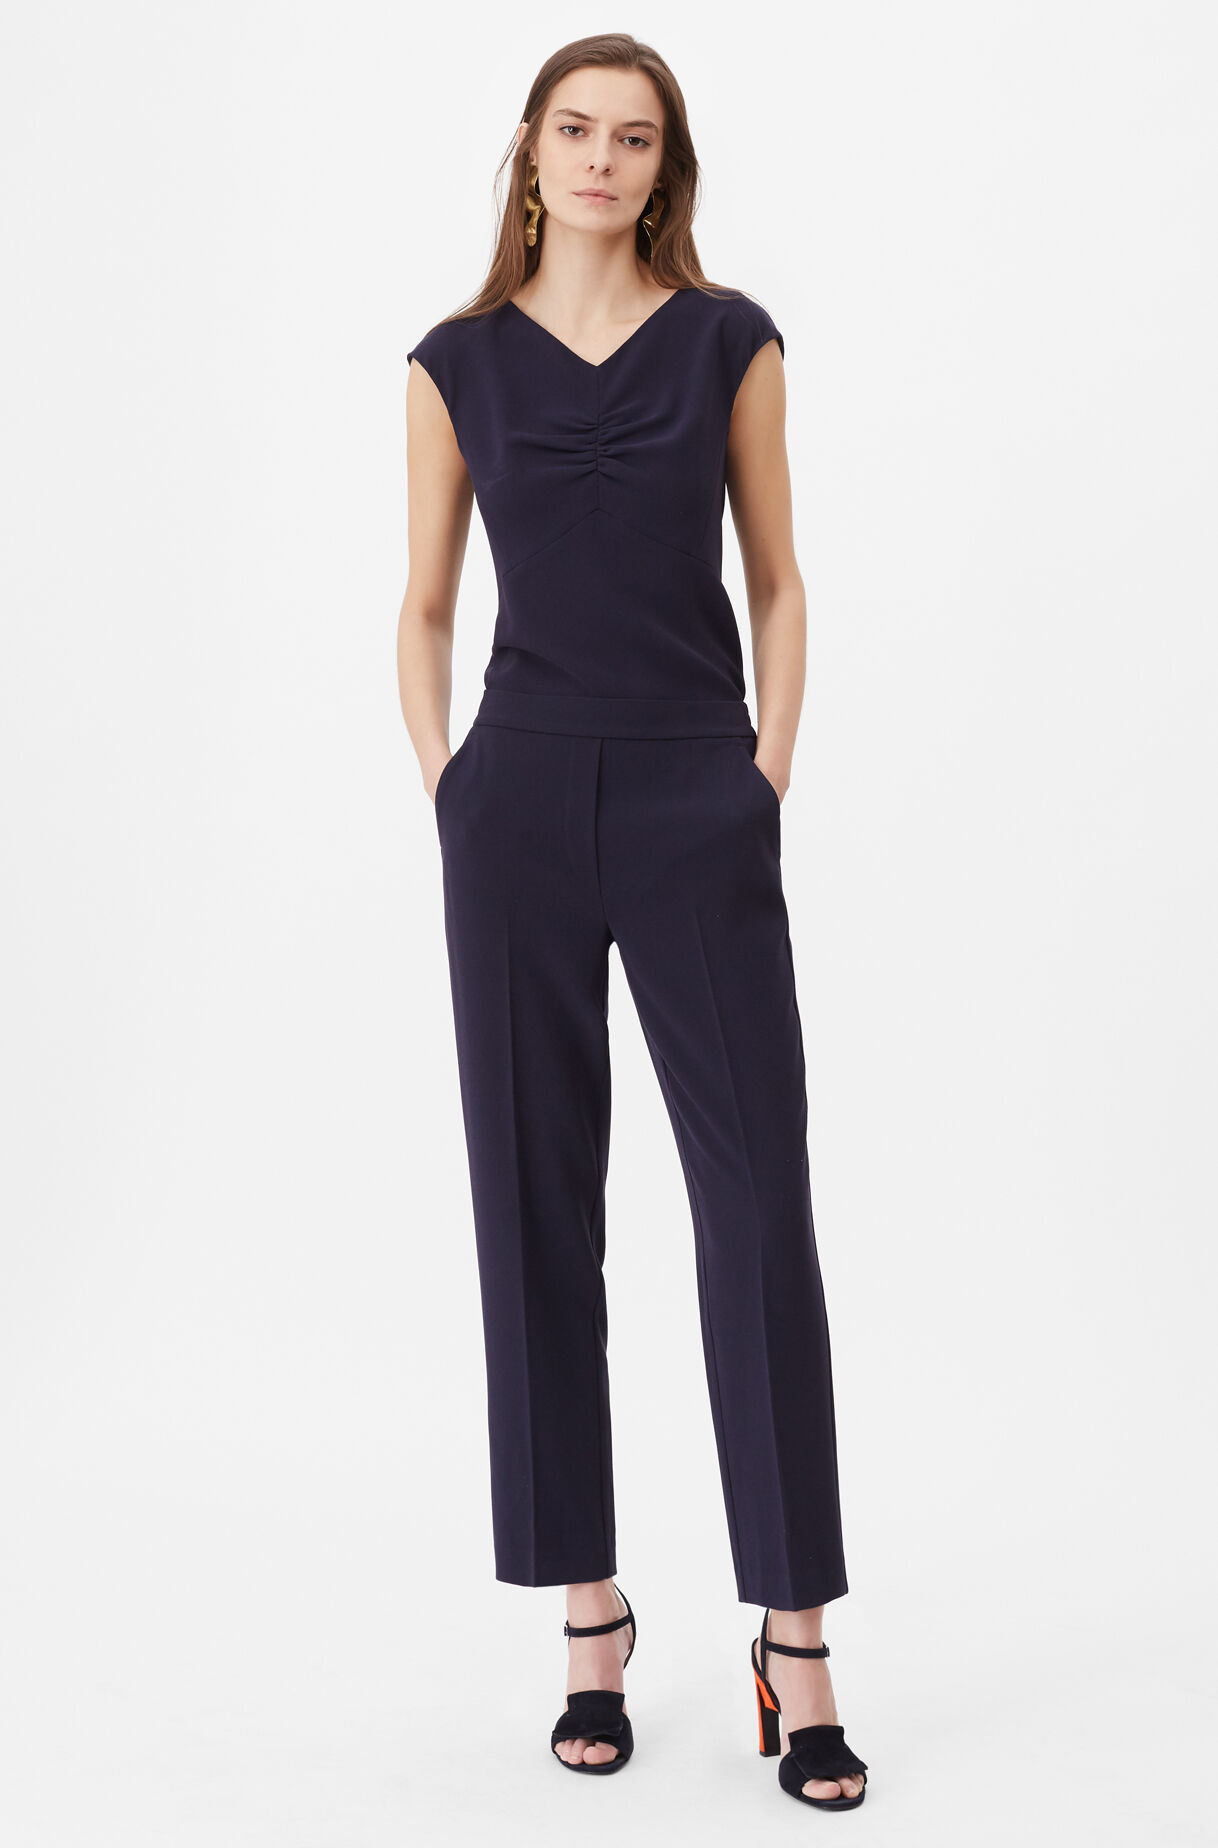 Tailored Crepe Pant, , large